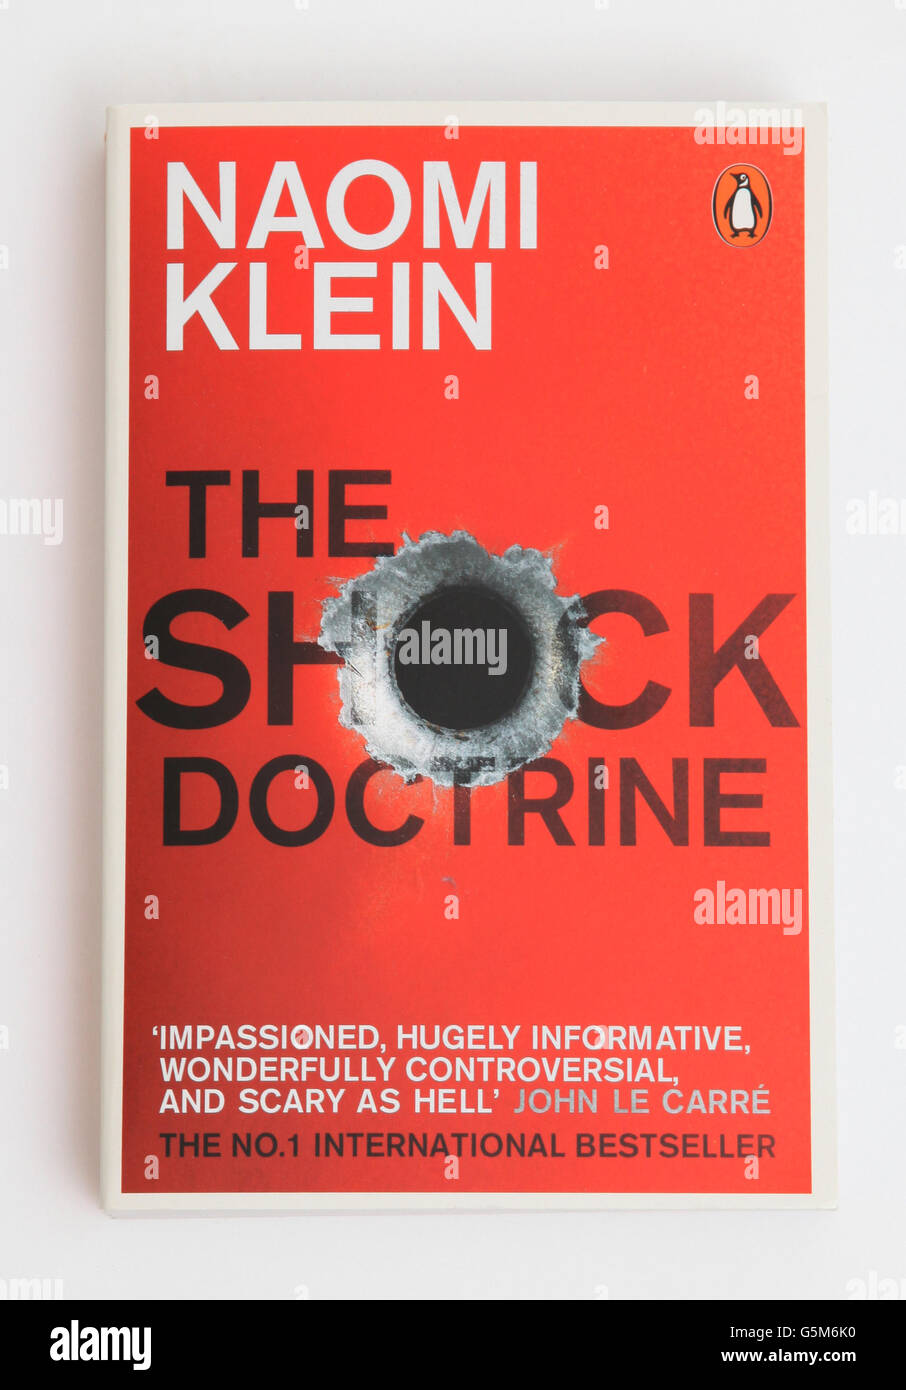 The book The Shock Doctrine by Naomi Klein - Stock Image